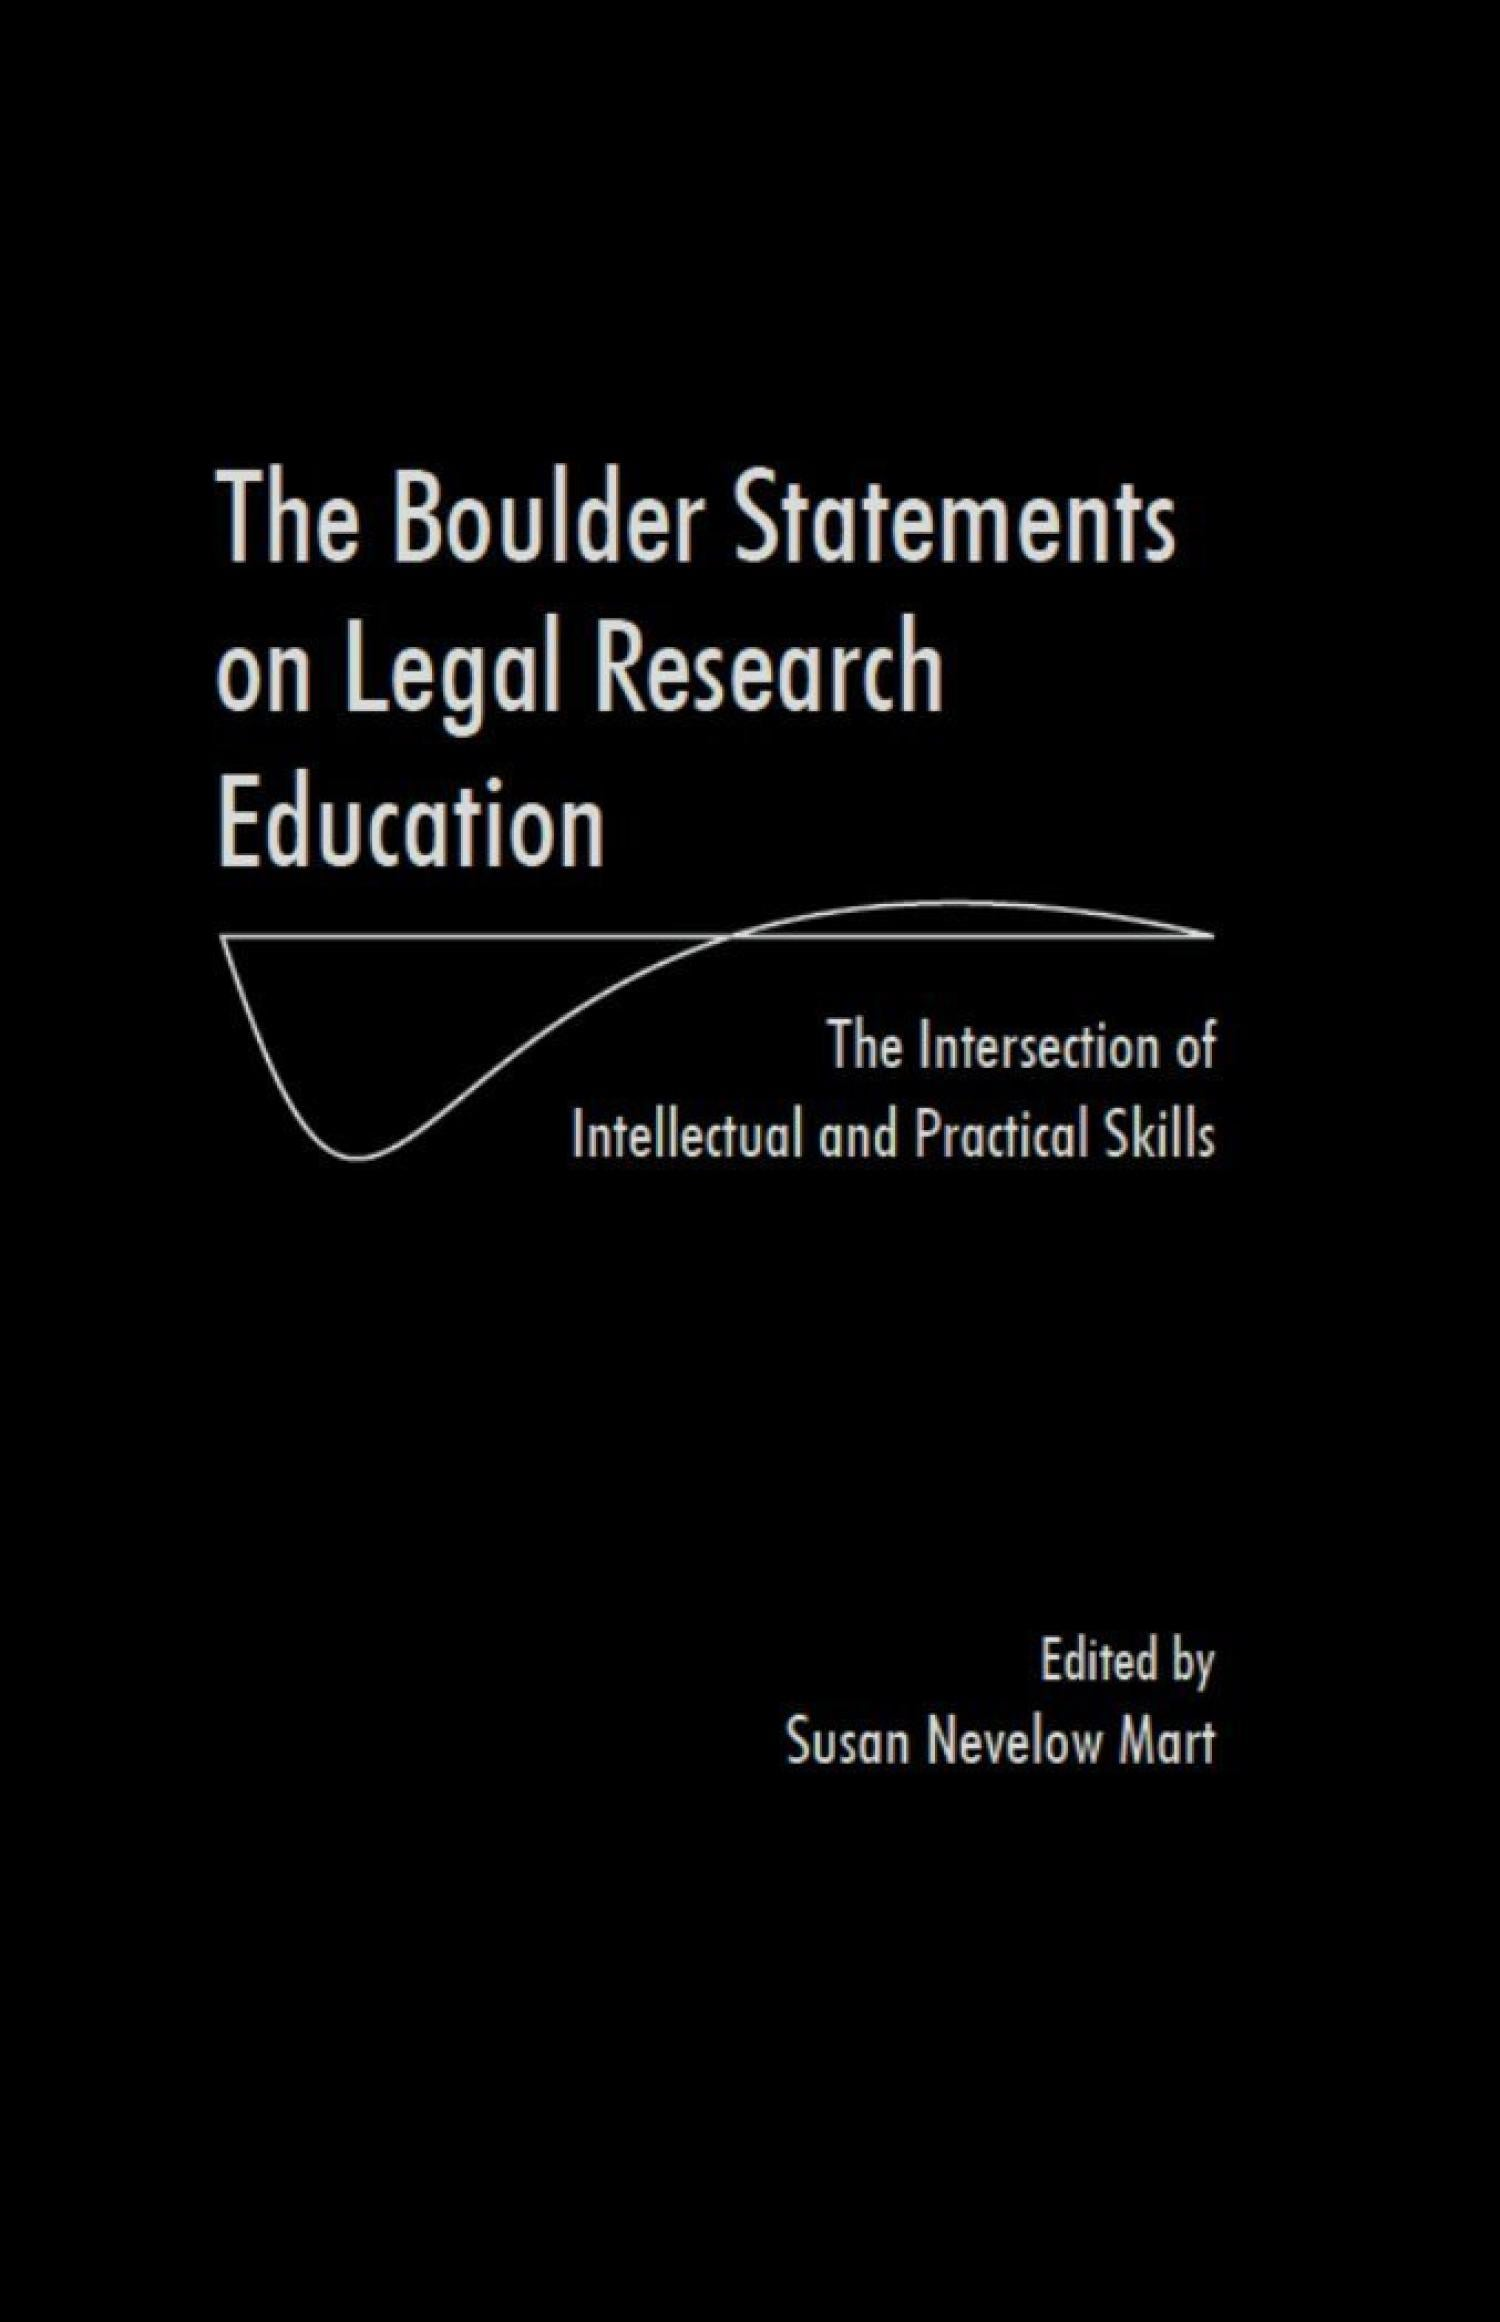 The Boulder Statements on Legal Research Education: The Intersection of Intellectual and Practical Skills